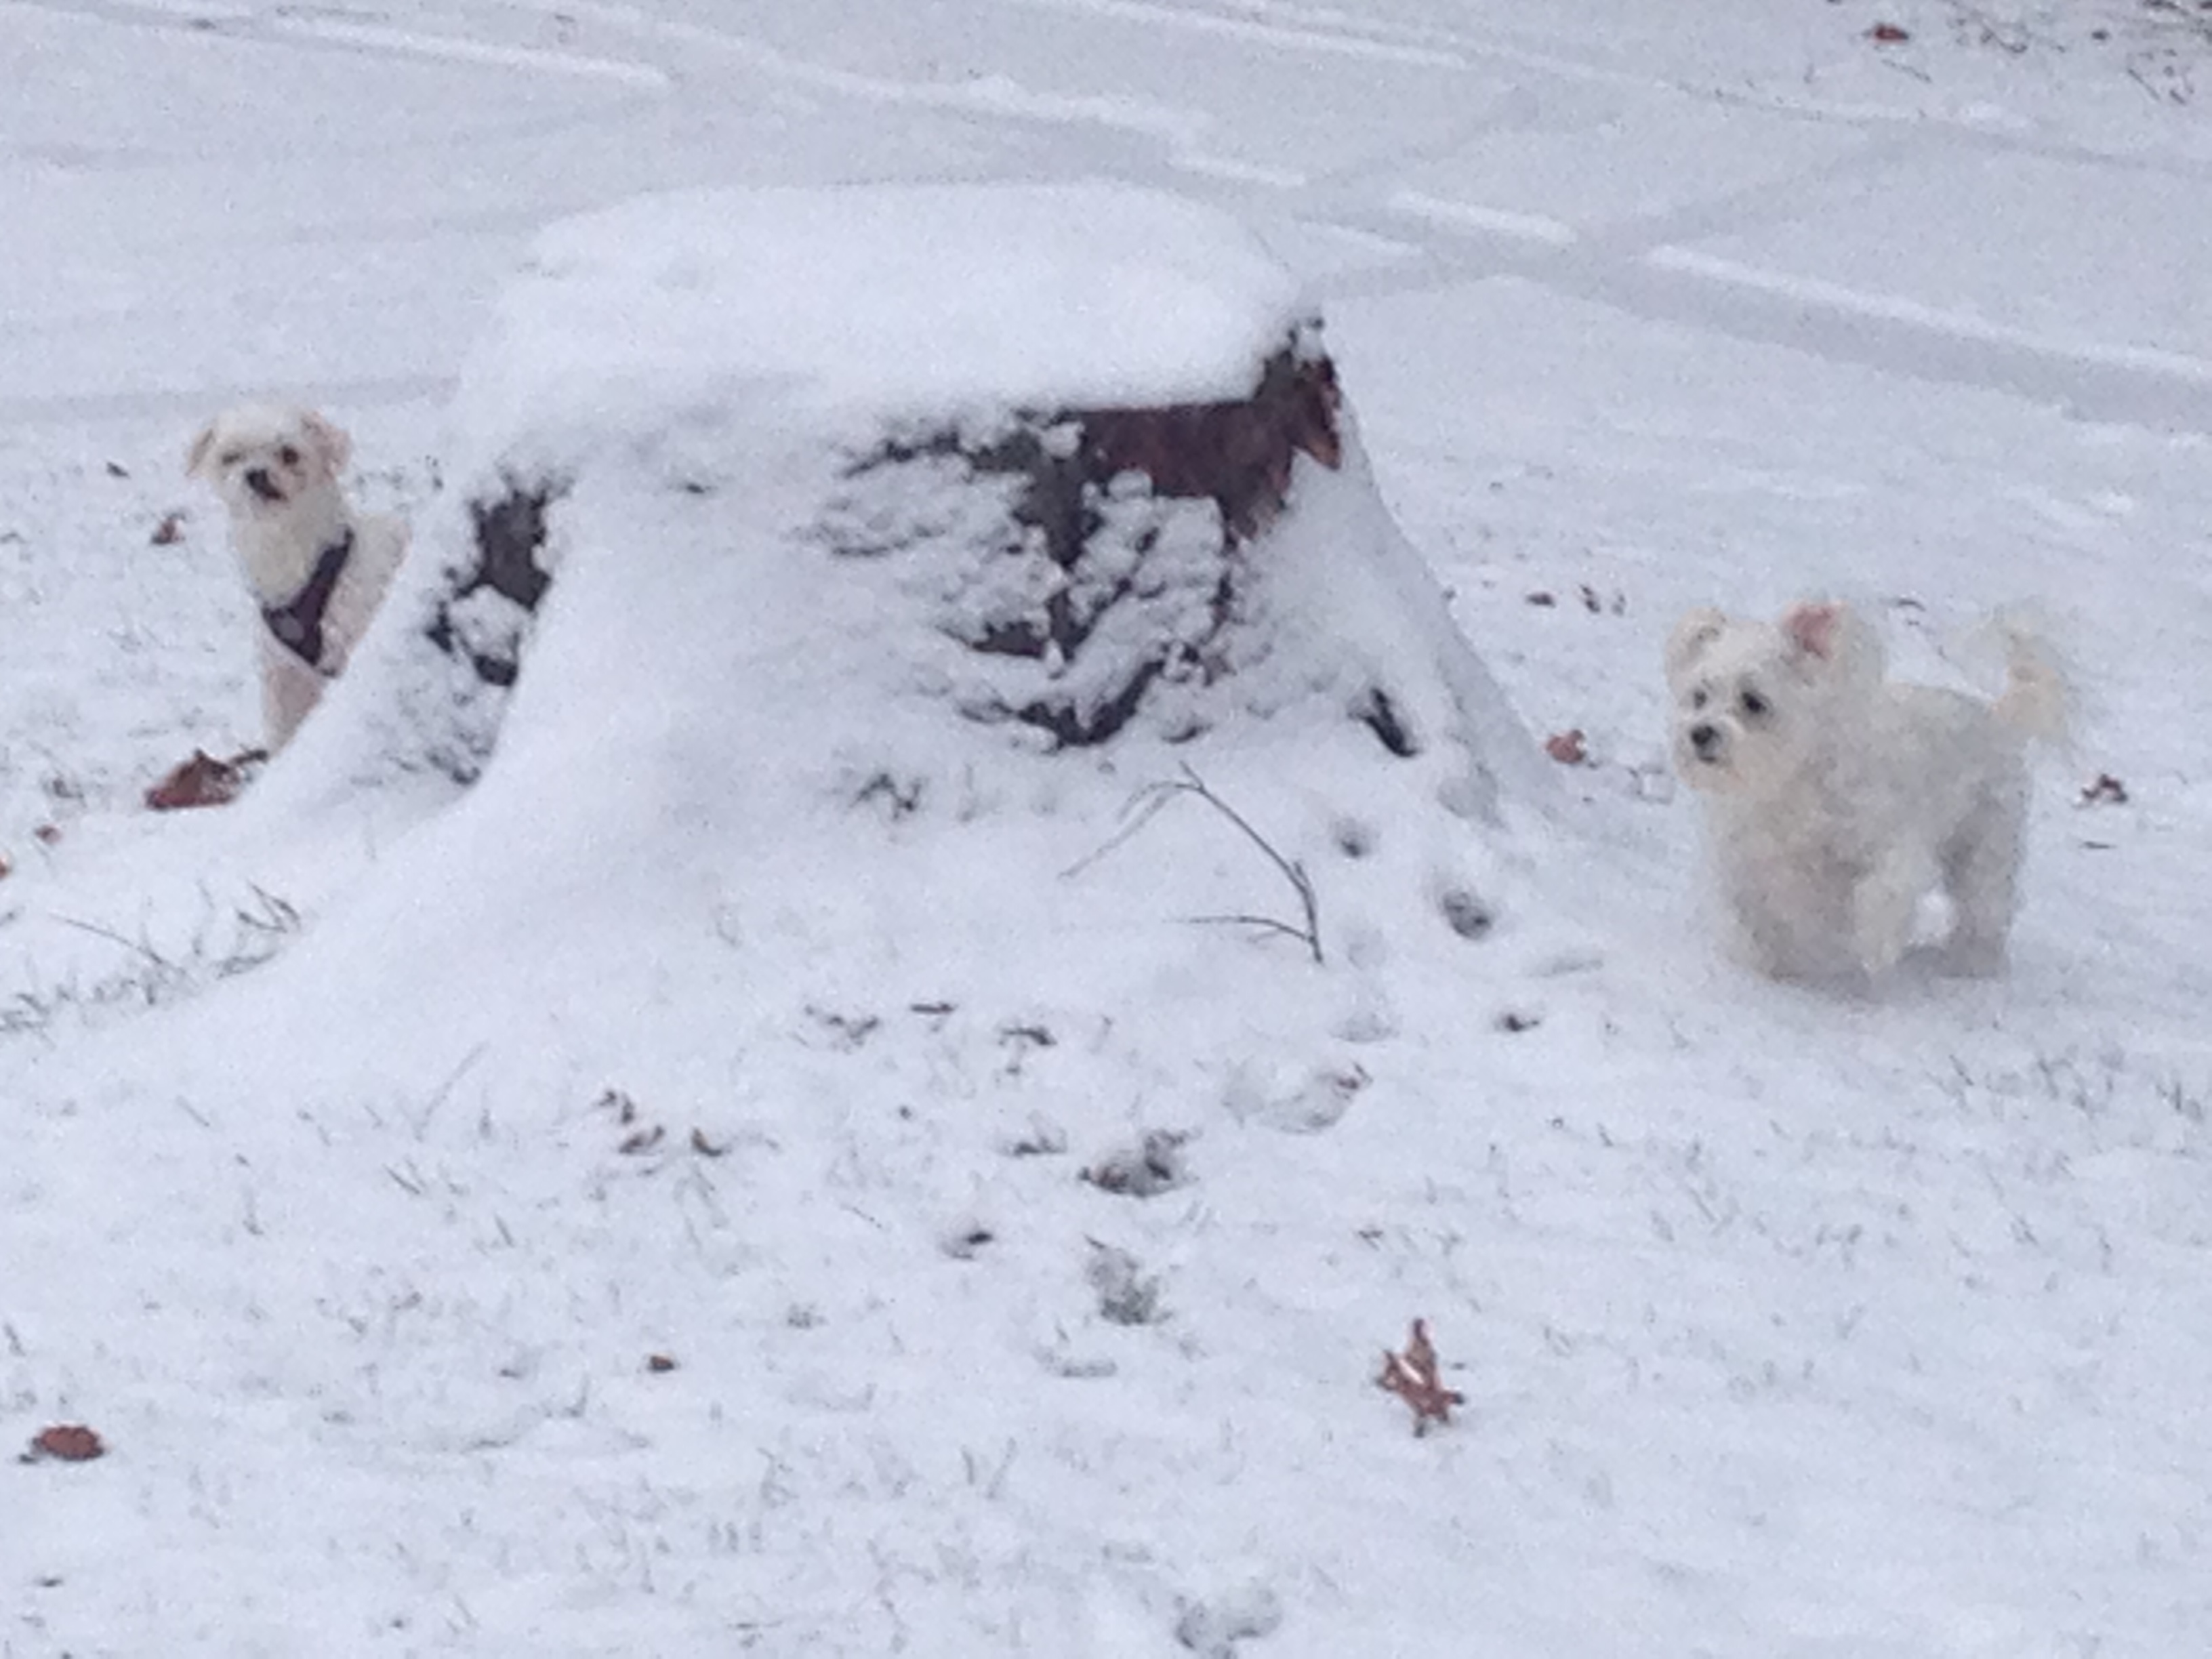 small dogs white morkie and white maltese standing around a stump in the snow